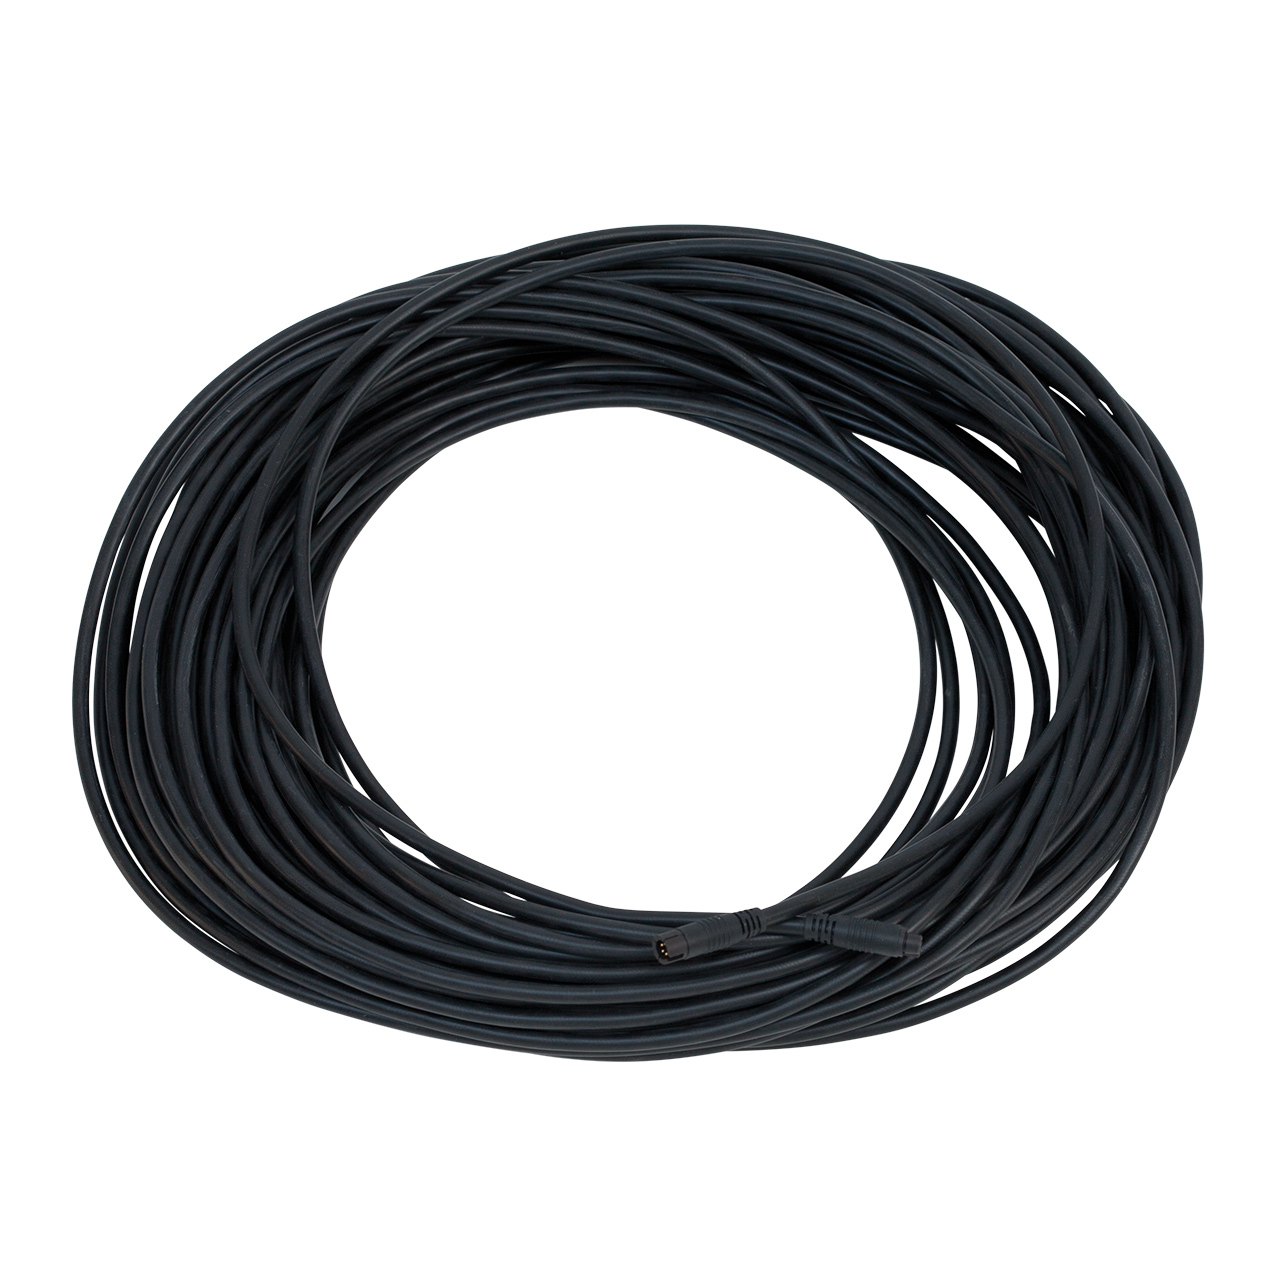 connection cable, 30m